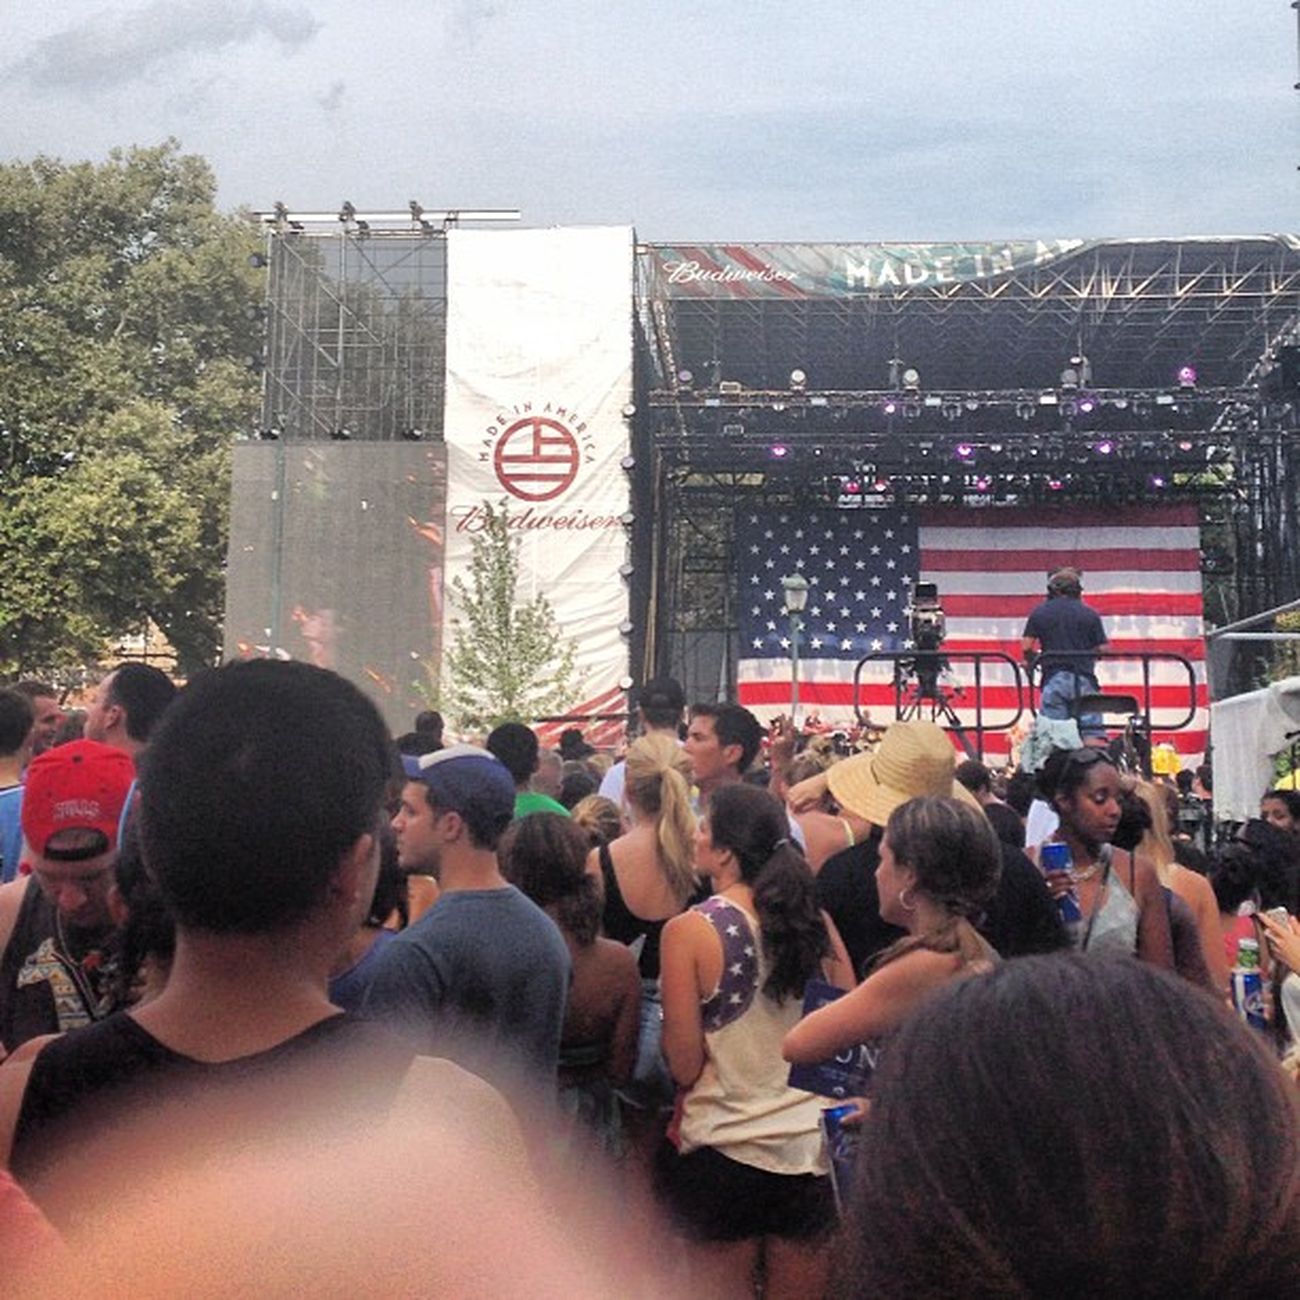 Red white and blue everywhere. Madeinamerica Bigfestival America